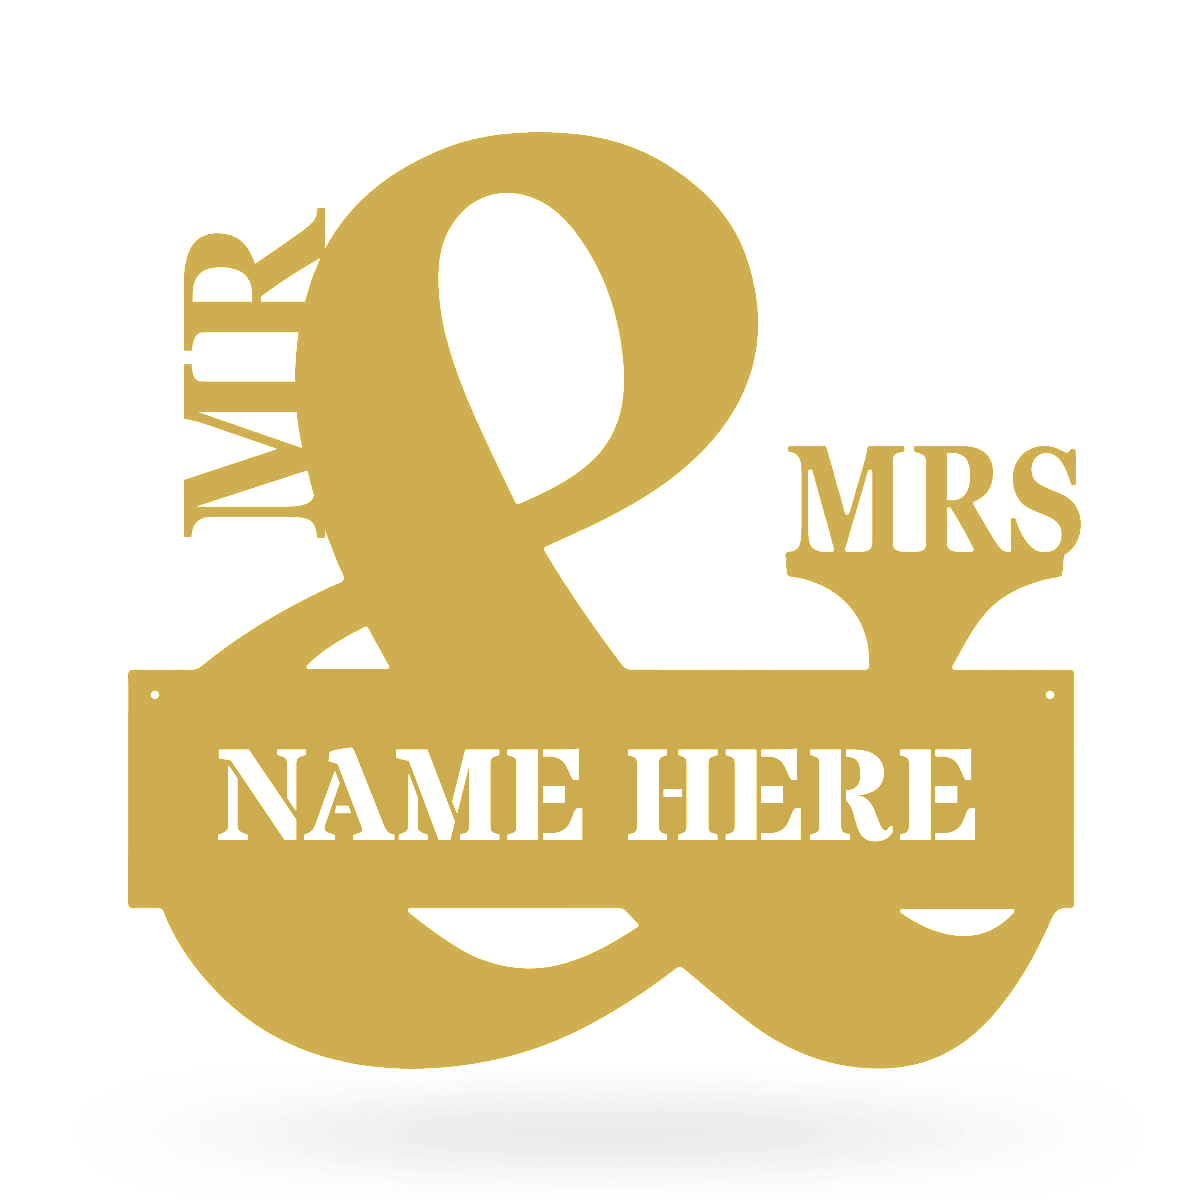 "Mr & Mrs Monogram 20""x20"" / Gold - RealSteel Center"